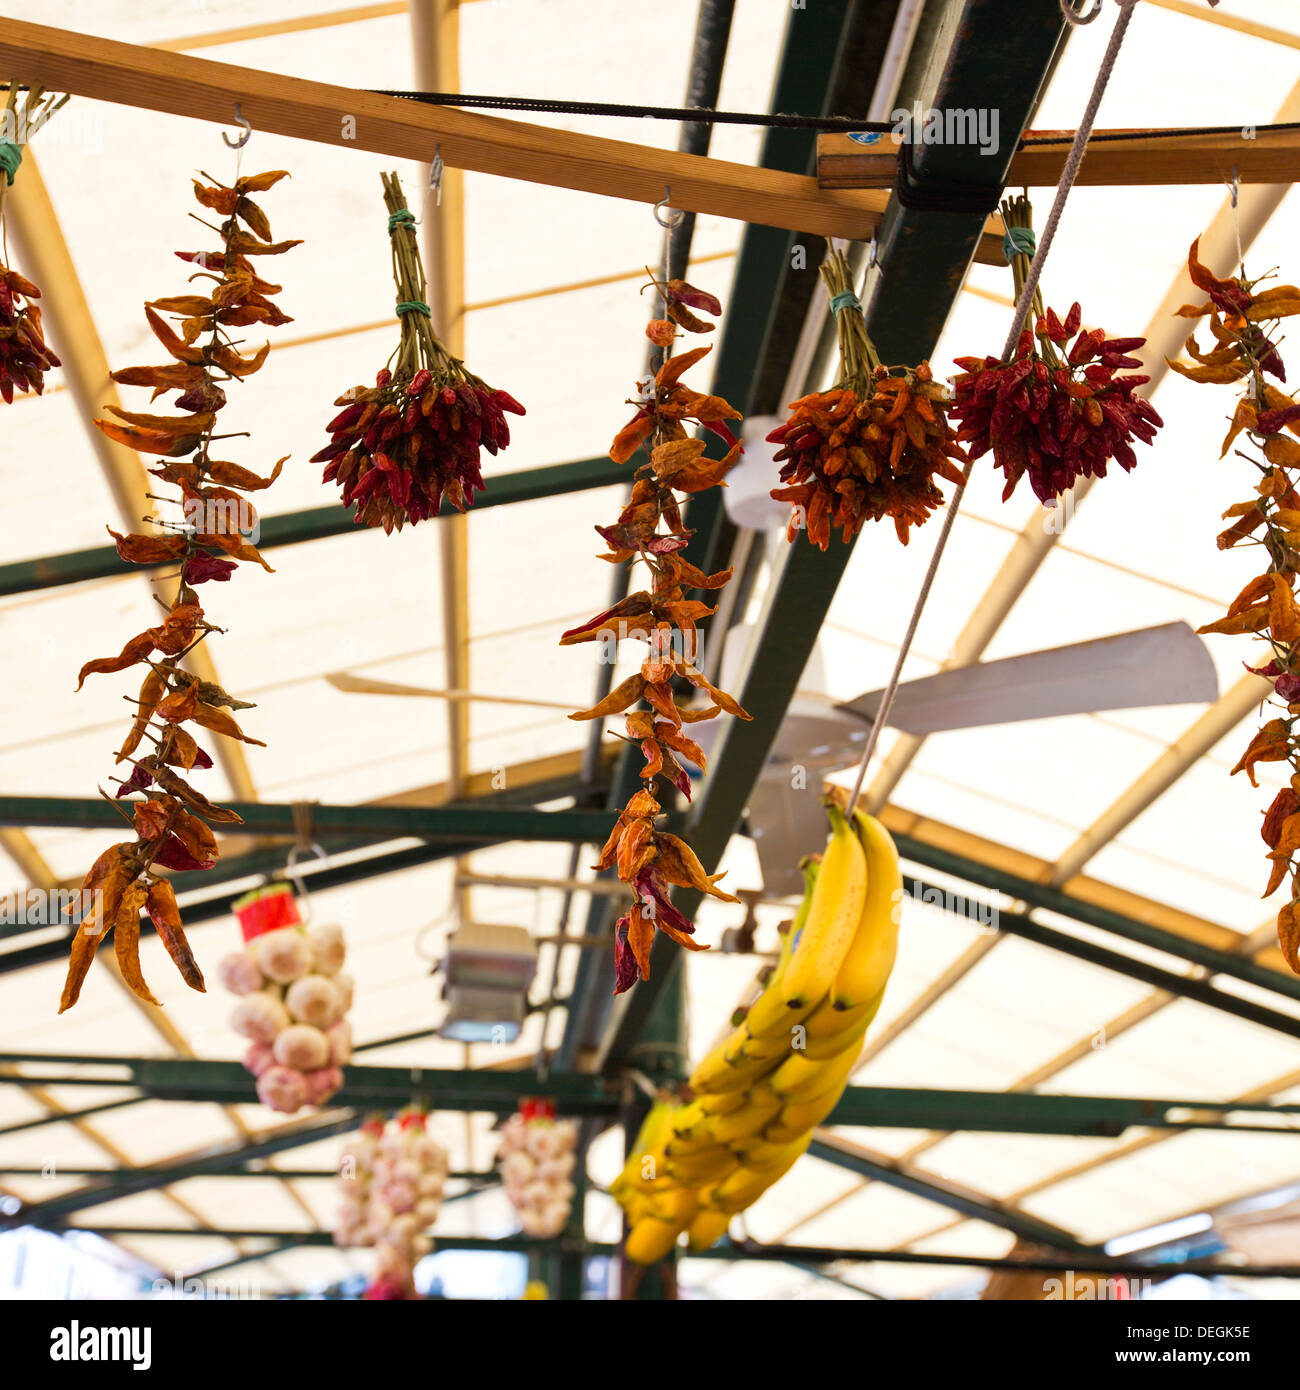 Chili peppers with bananas hanging at market stall, Tronchetto Mercato, Venice, Veneto, Italy - Stock Image